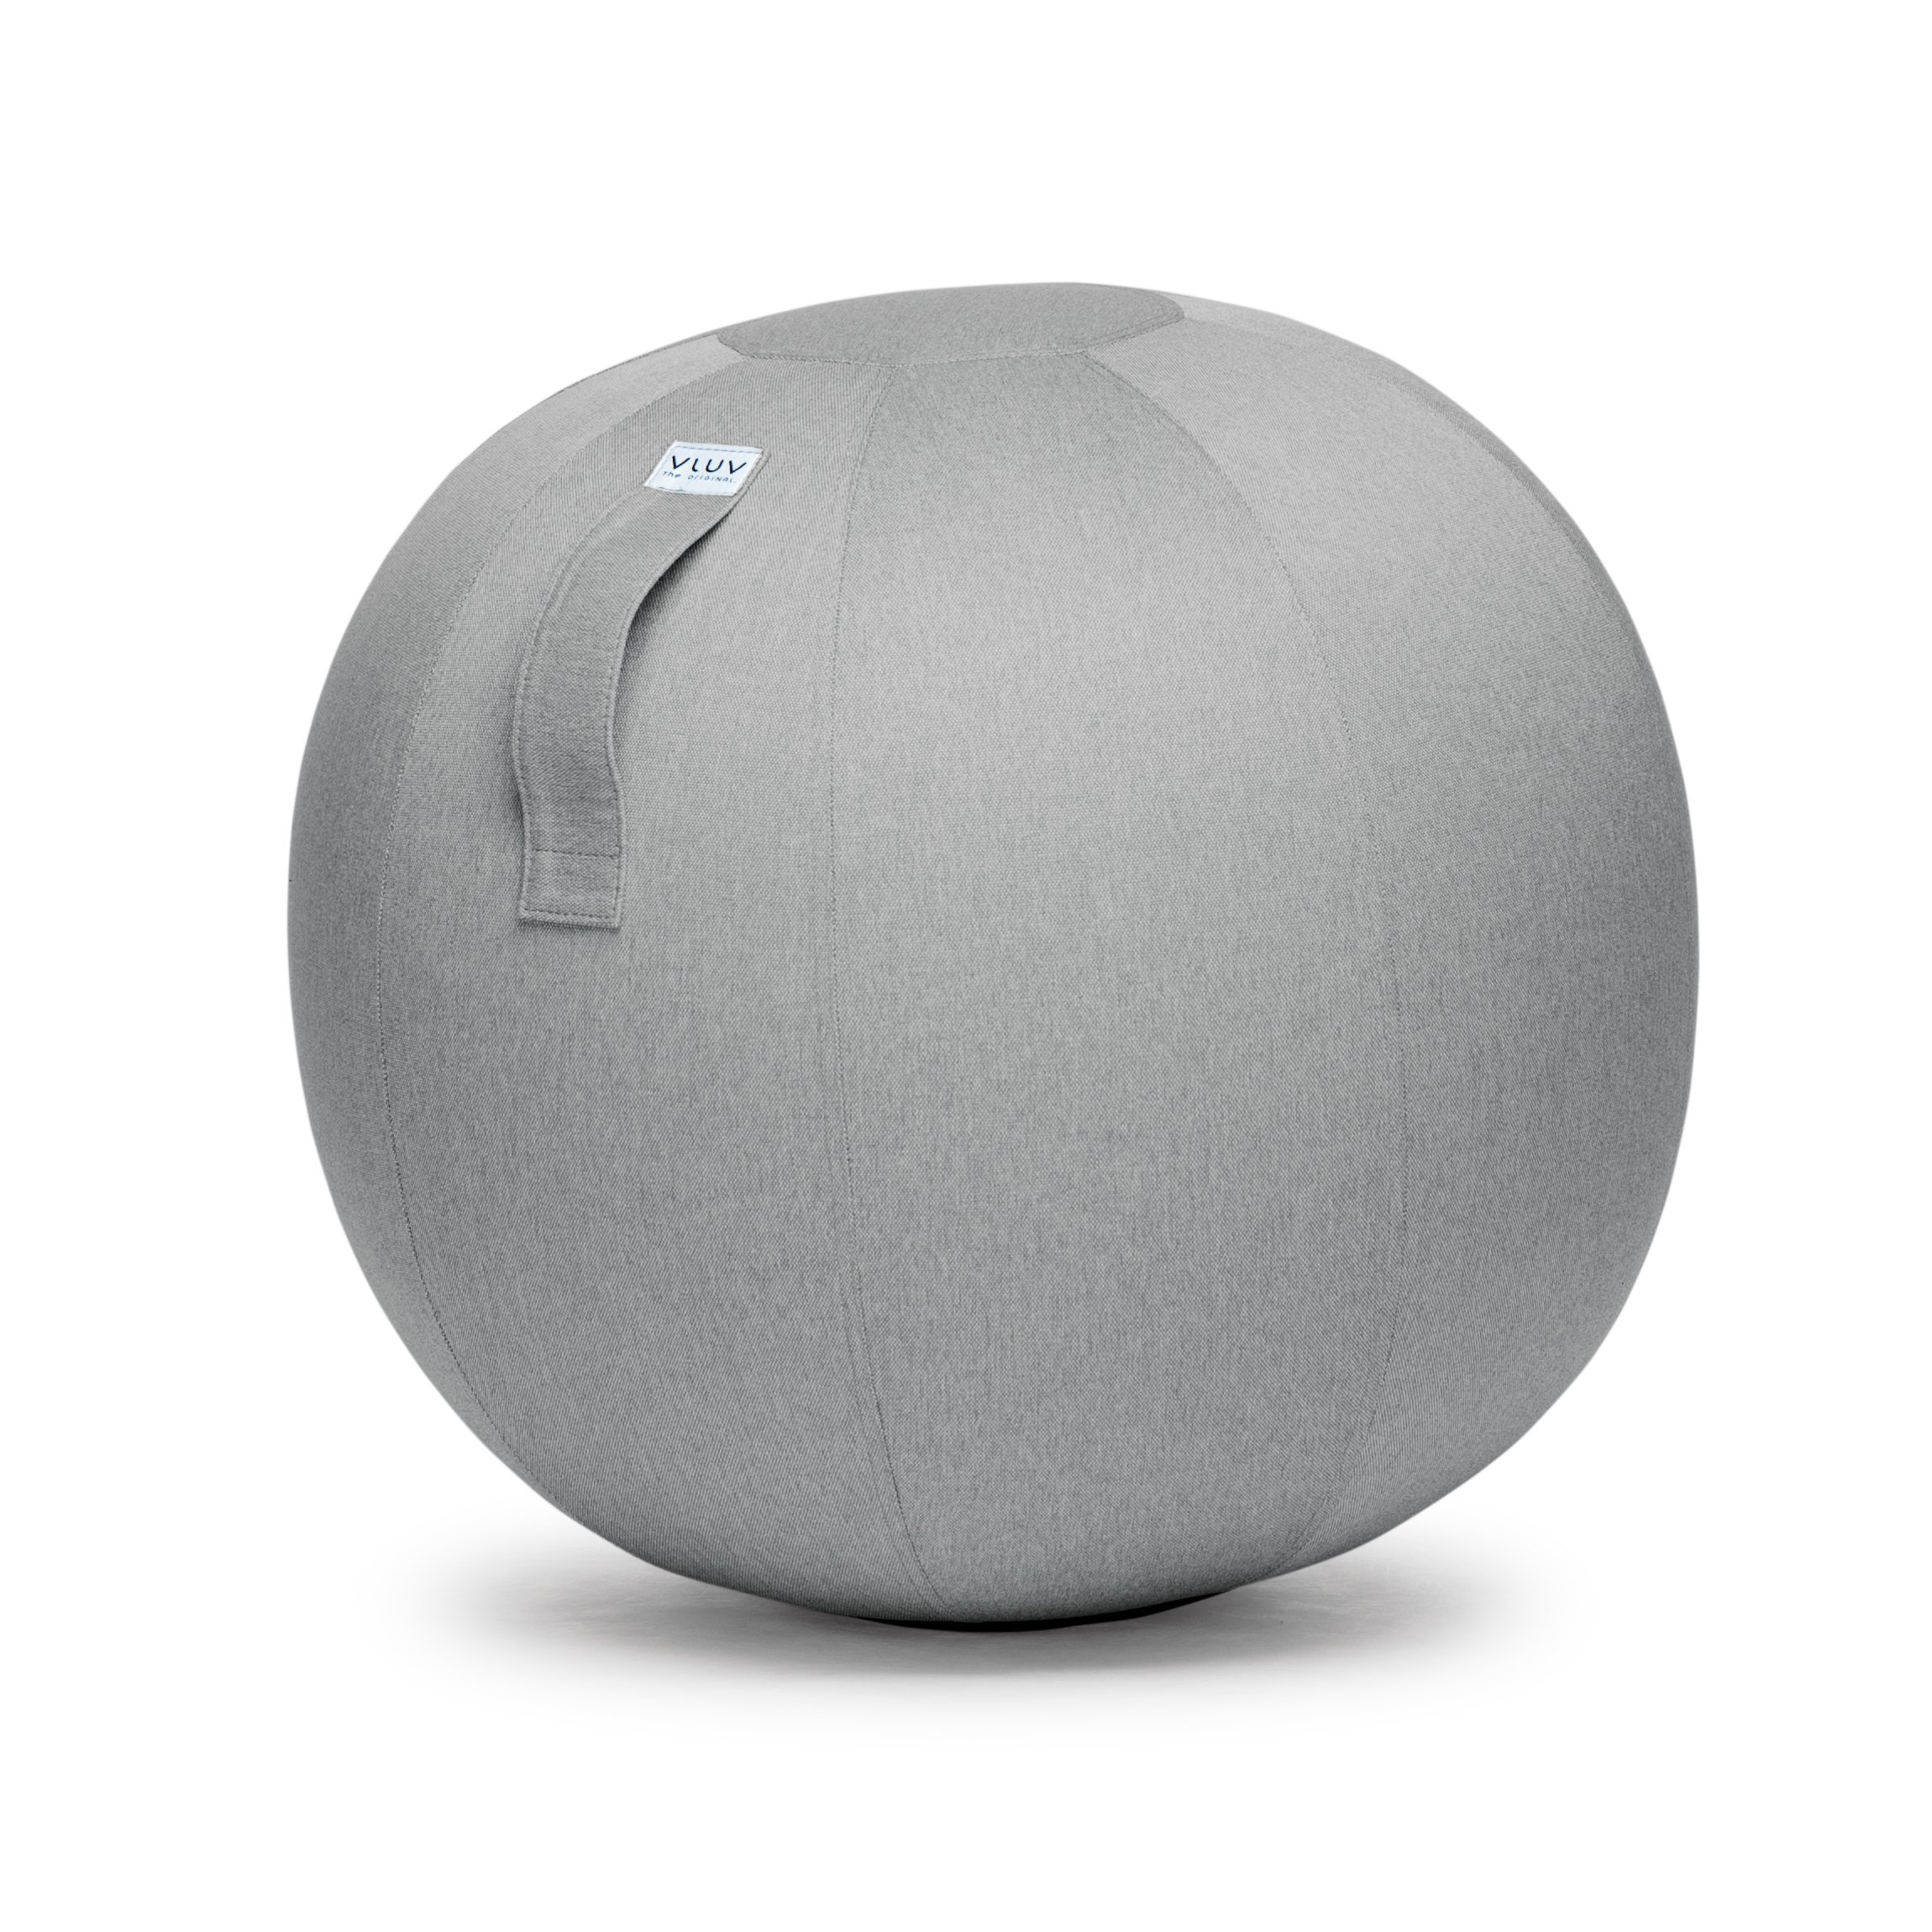 VLUV LEIV 29.5'' Premium Quality Self-Standing Sitting Ball with Handle - Home or Office Chair and Exercise Ball for Yoga, Stretching, or Gym Stone Colored Canvas Fabric (Silver Colored, 25.6'')